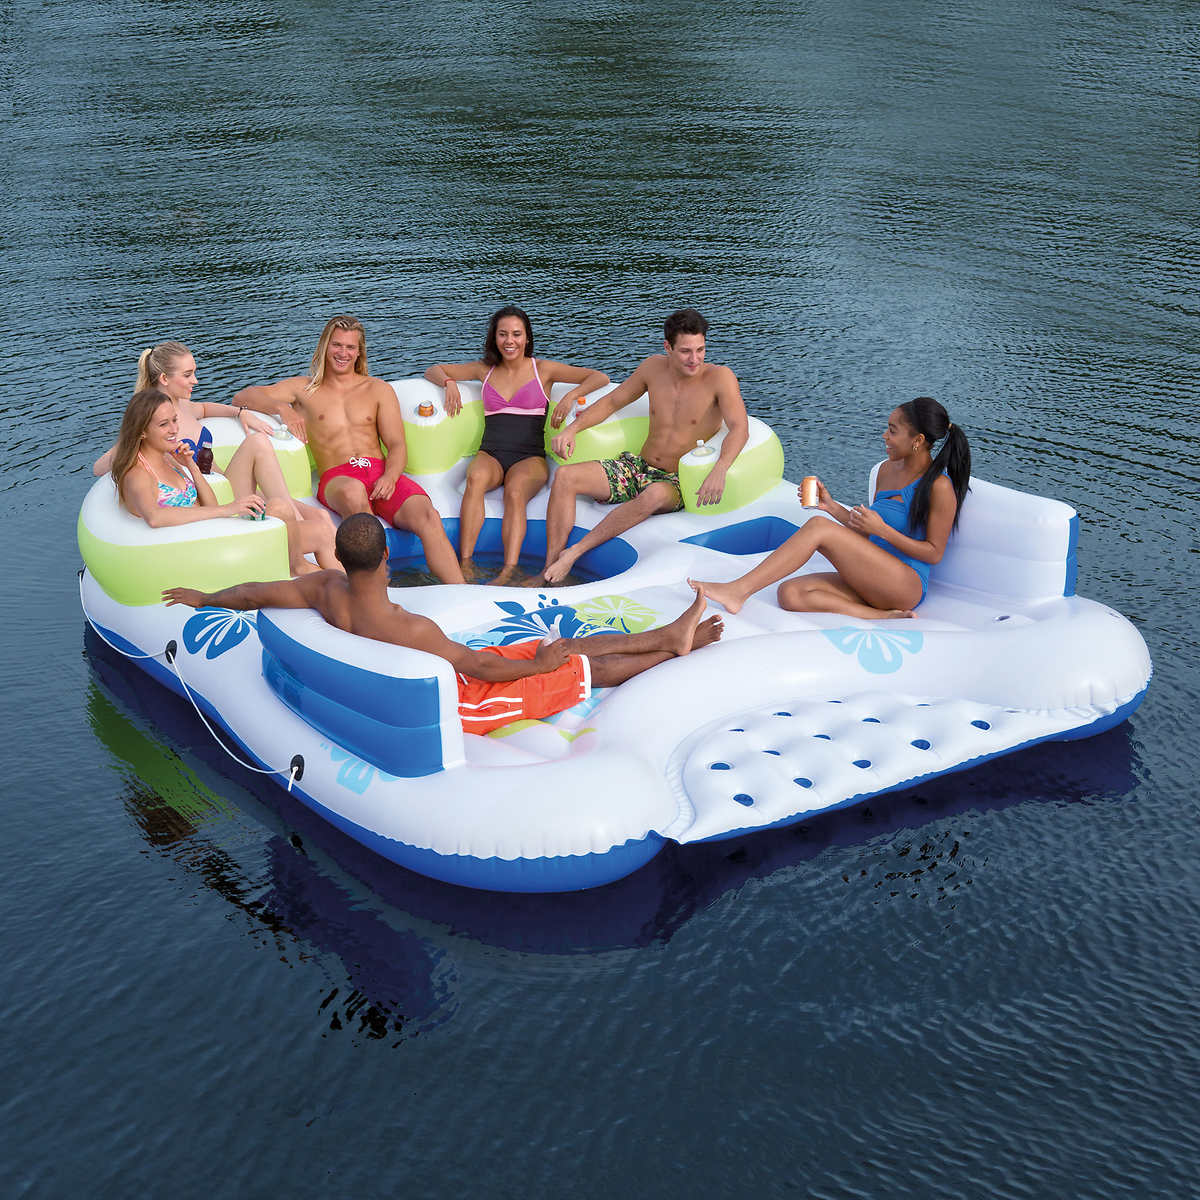 Tiki Breeze Floating Island: Gather up the whole crew and form your own island away from all the madness. The island comes complete with 6 cup holders and two built in ice buckets. Buy it at Costco for $169.99. (Photo: Courtesy Costco)